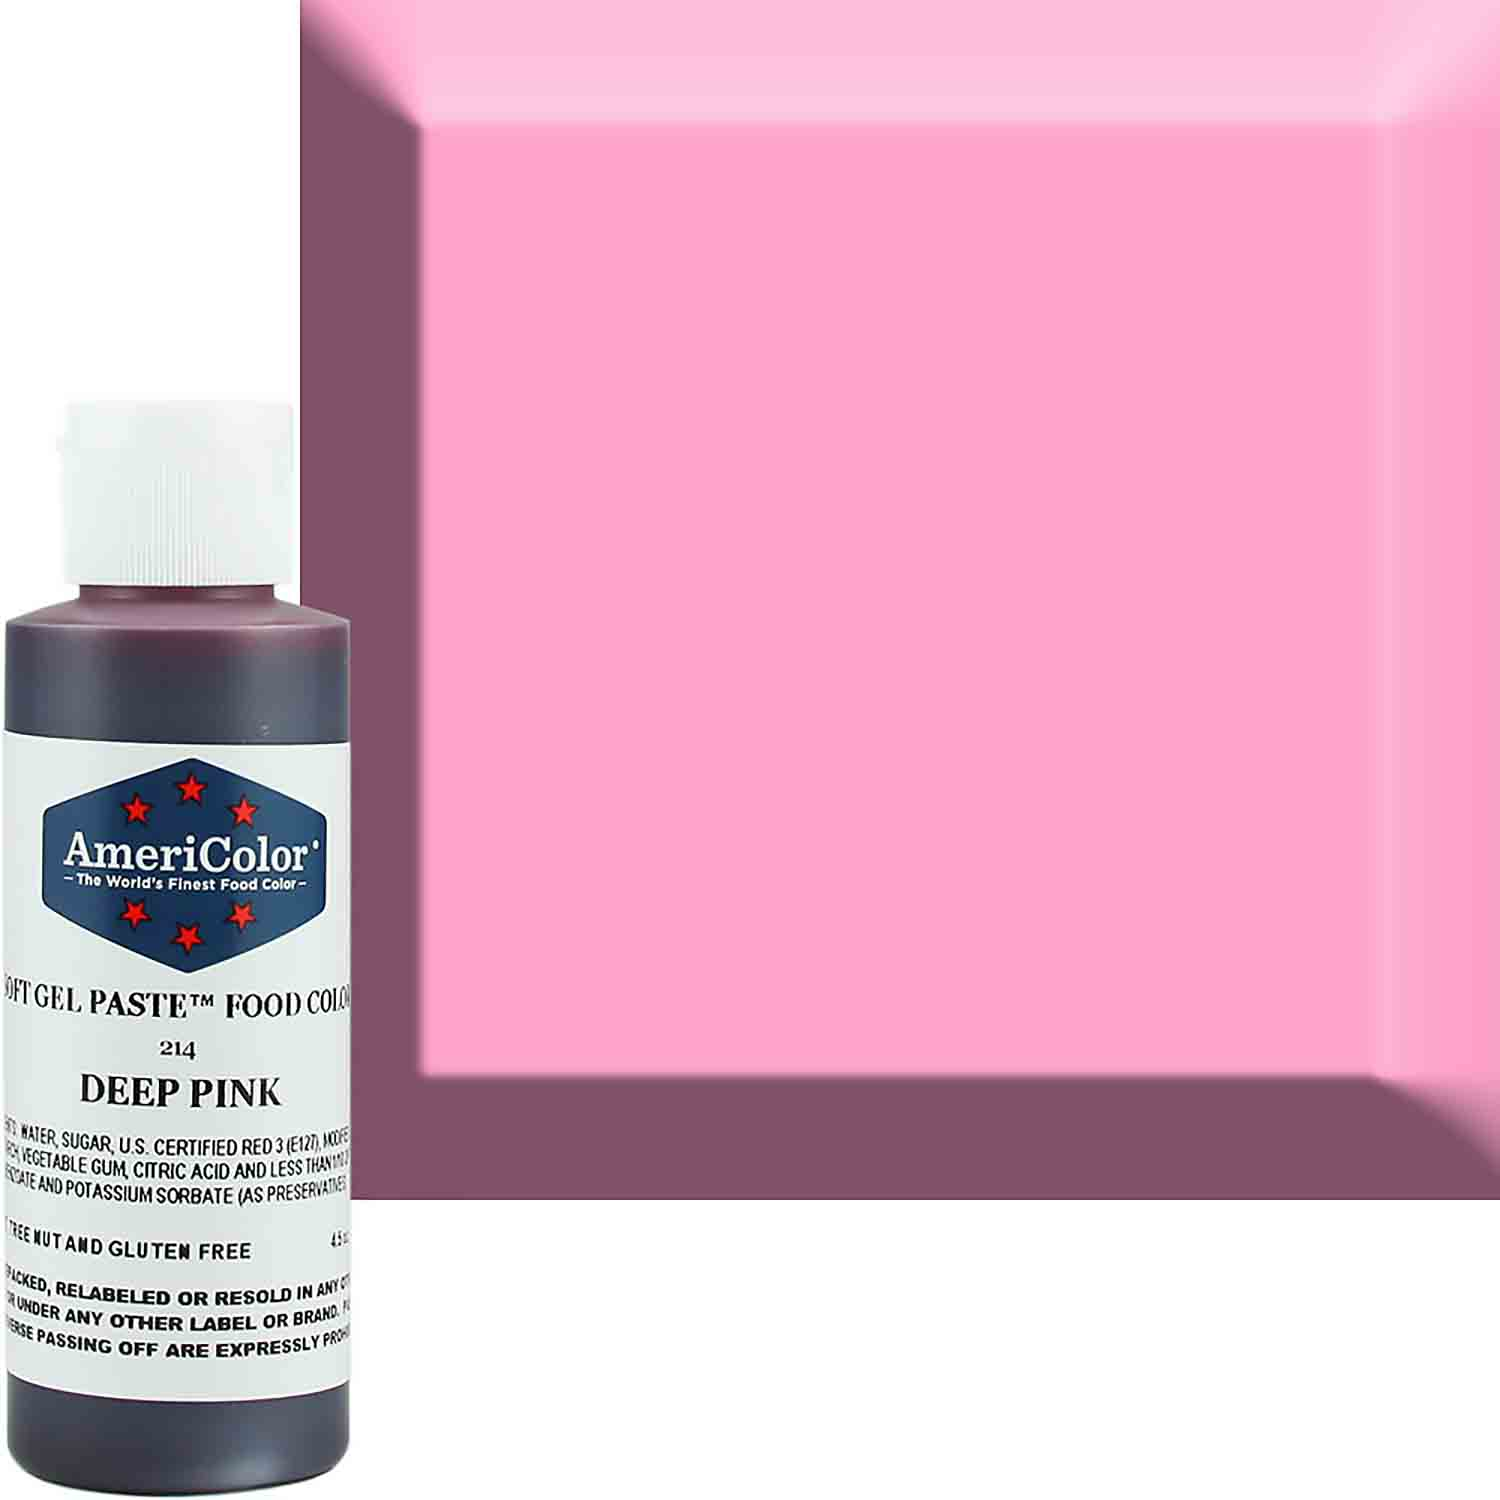 Deep Pink Americolor® Soft Gel Paste Food Color (Old # 41-7814)